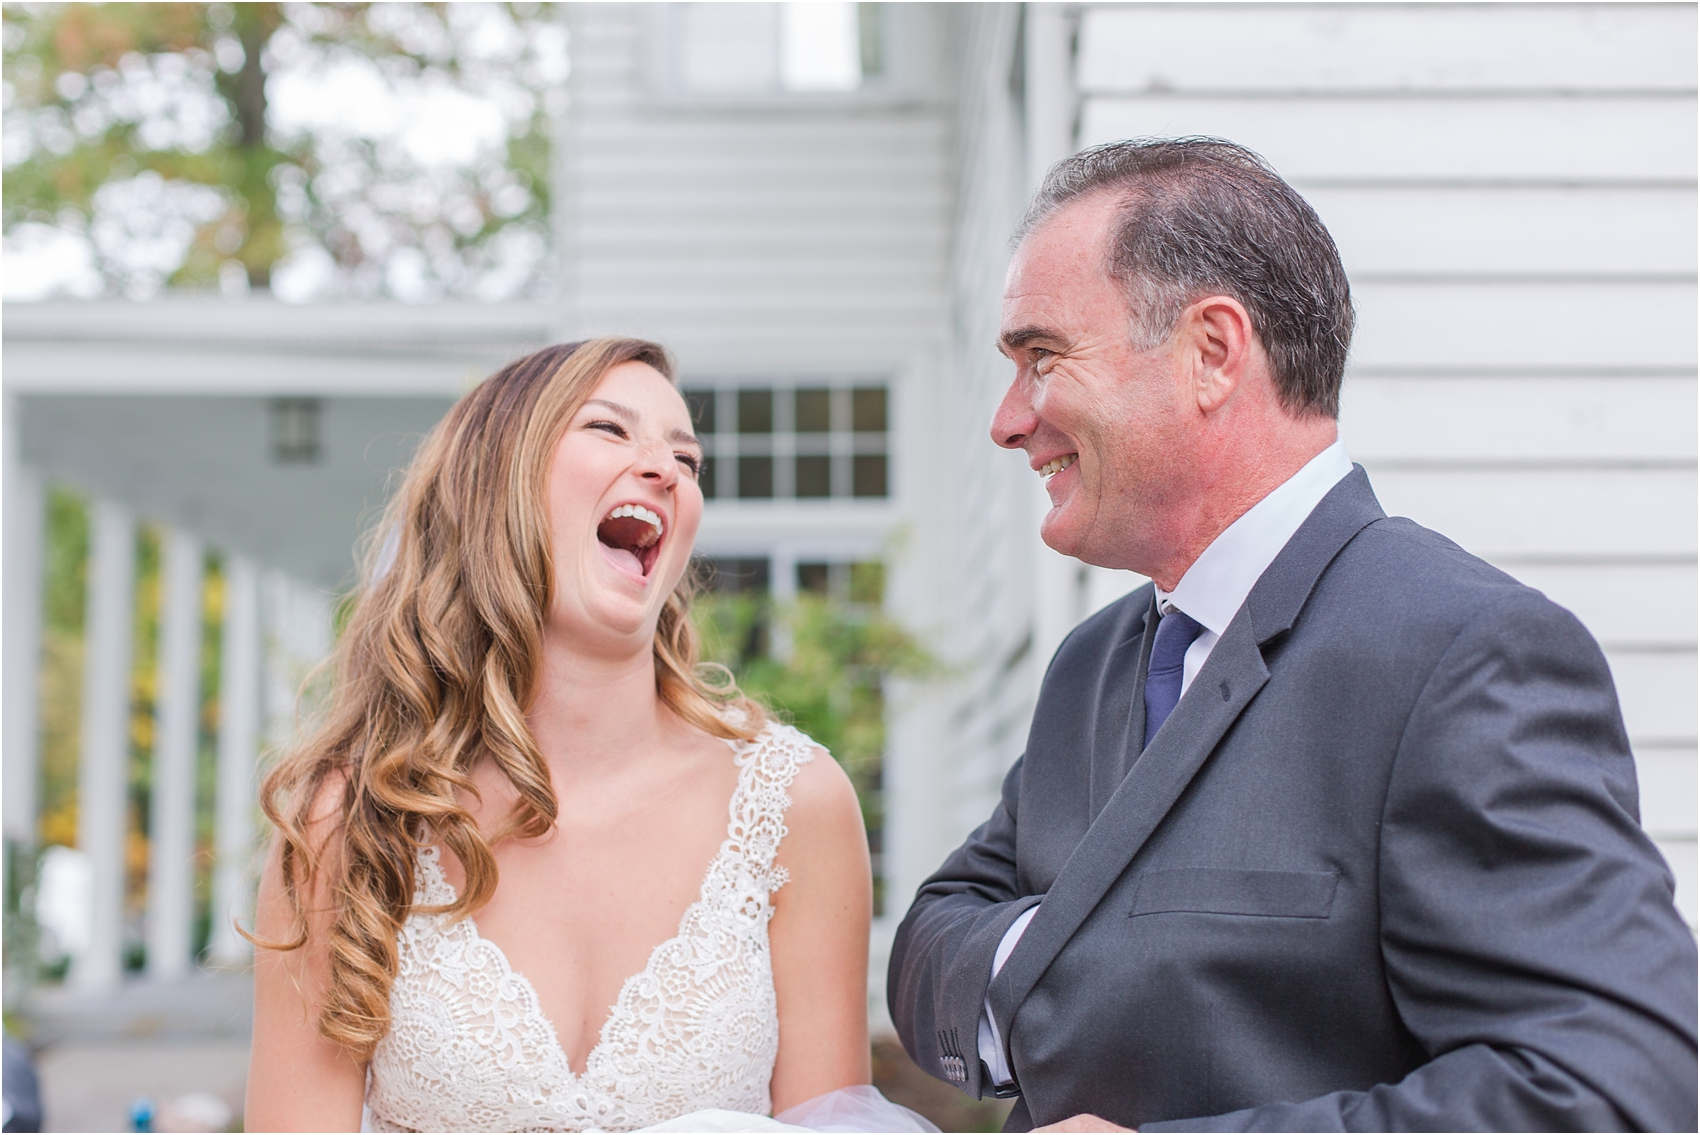 father-and-bride-share-emotional-first-look-on-wedding-day-photos-in-detroit-michigan-by-courtney-carolyn-photography_0066.jpg